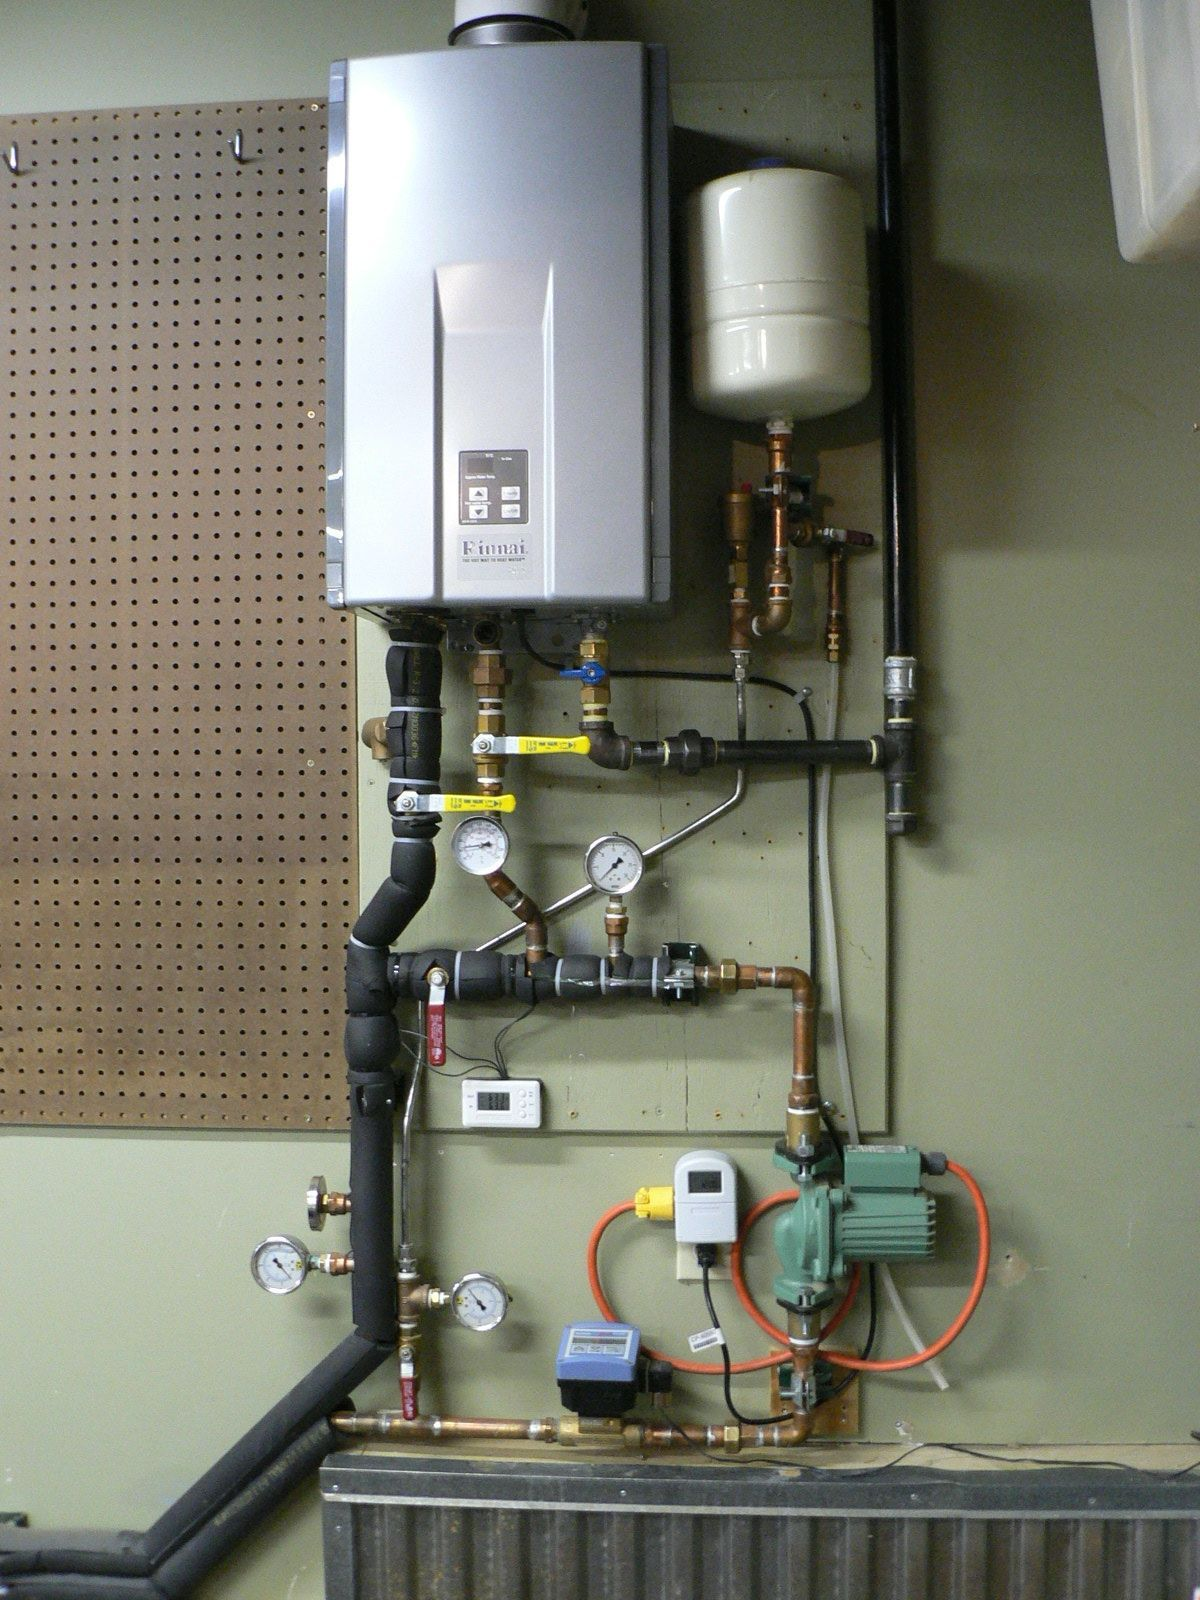 How to heat a garage exploring some low cost options for for Garage low cost